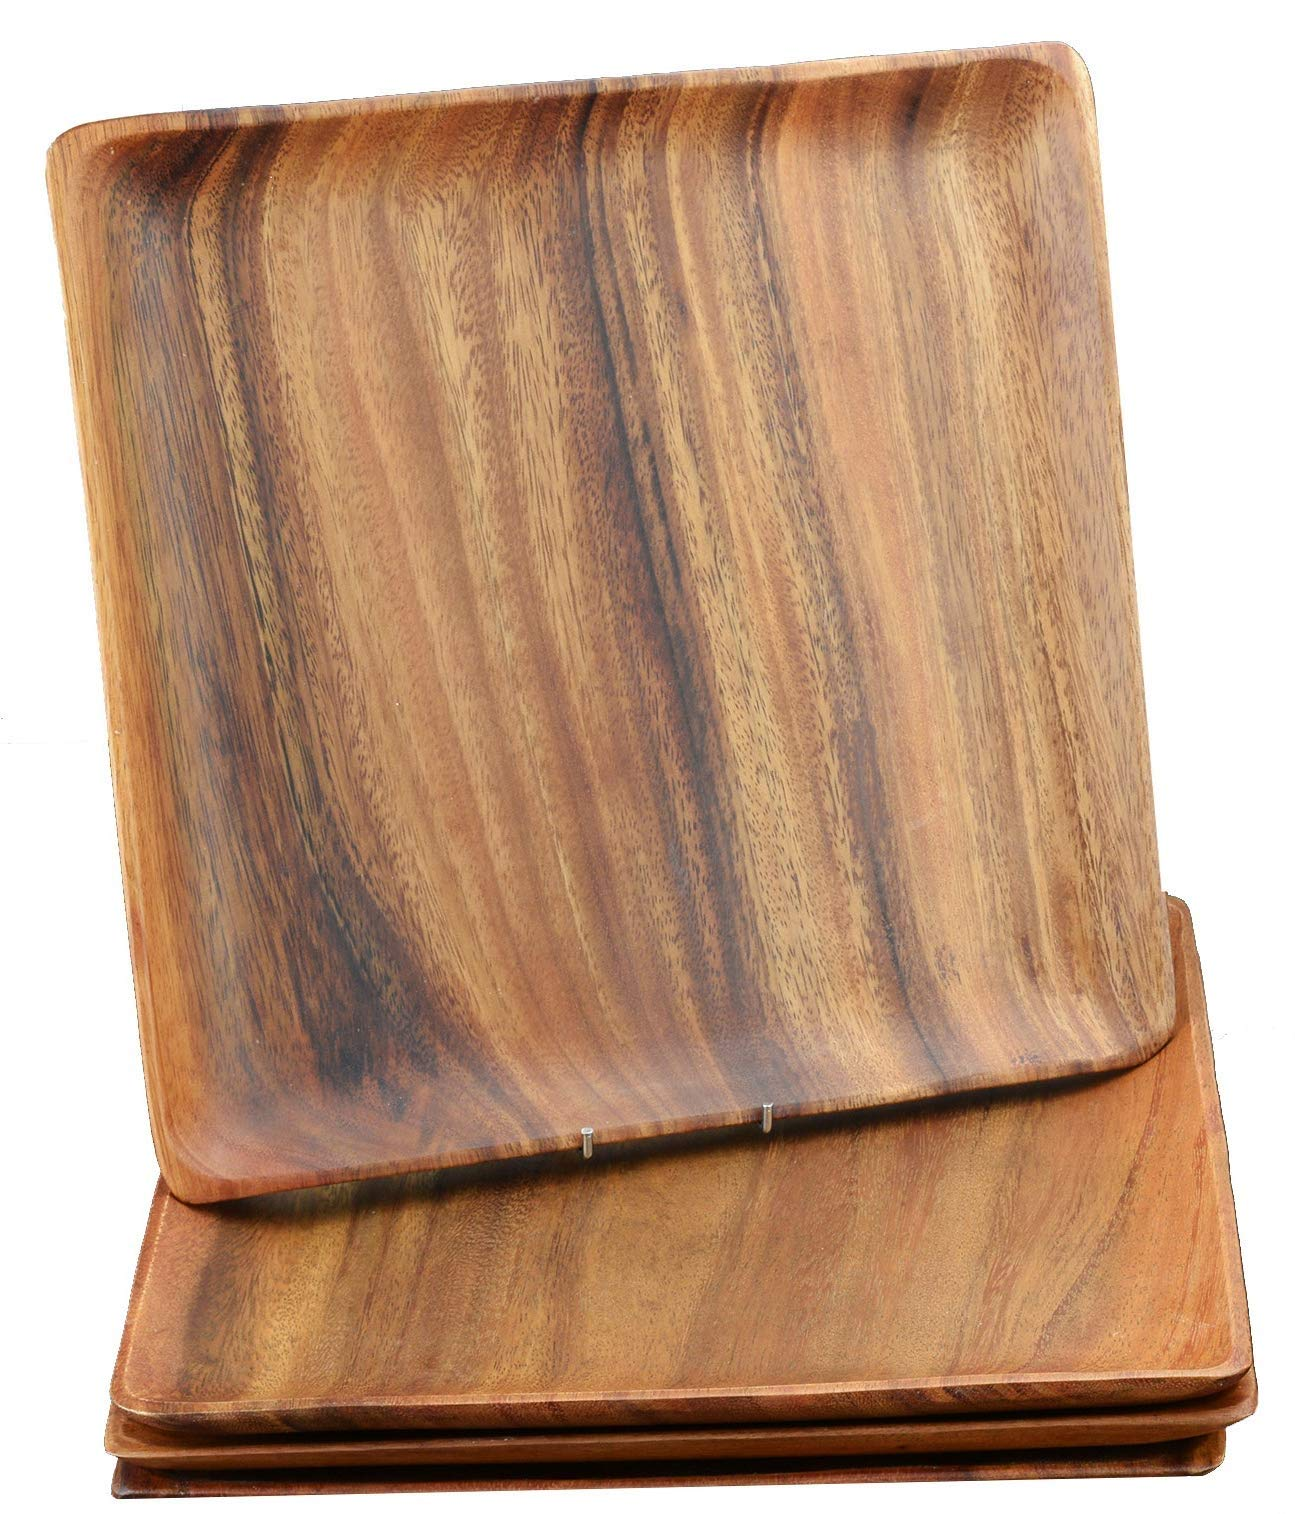 Pacific Merchants Acaciaware 10-Inch Acacia Wood Square Serving Tray, set of 4,Brown,10 Inch, Set of 4 by Pacific Merchants Trading